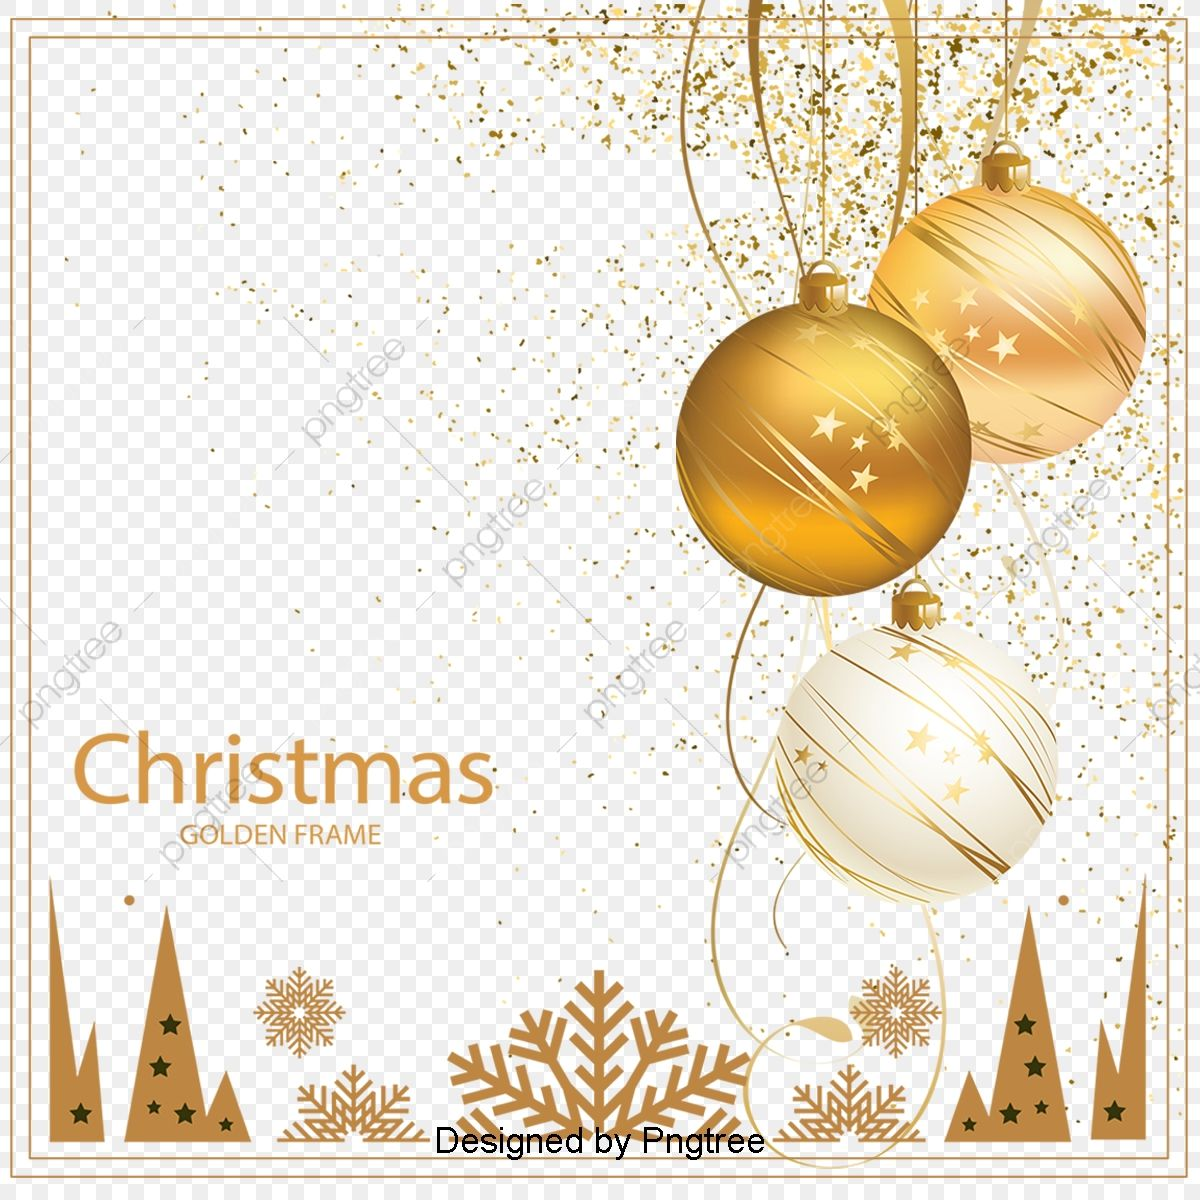 The Emperor Of The Gold Christmas Decoration Christmas Decorations Clipart The Gold Png Transparent Clipart Image And Psd File For Free Download Gold Christmas Decorations Marry Christmas Wallpaper Christmas Design